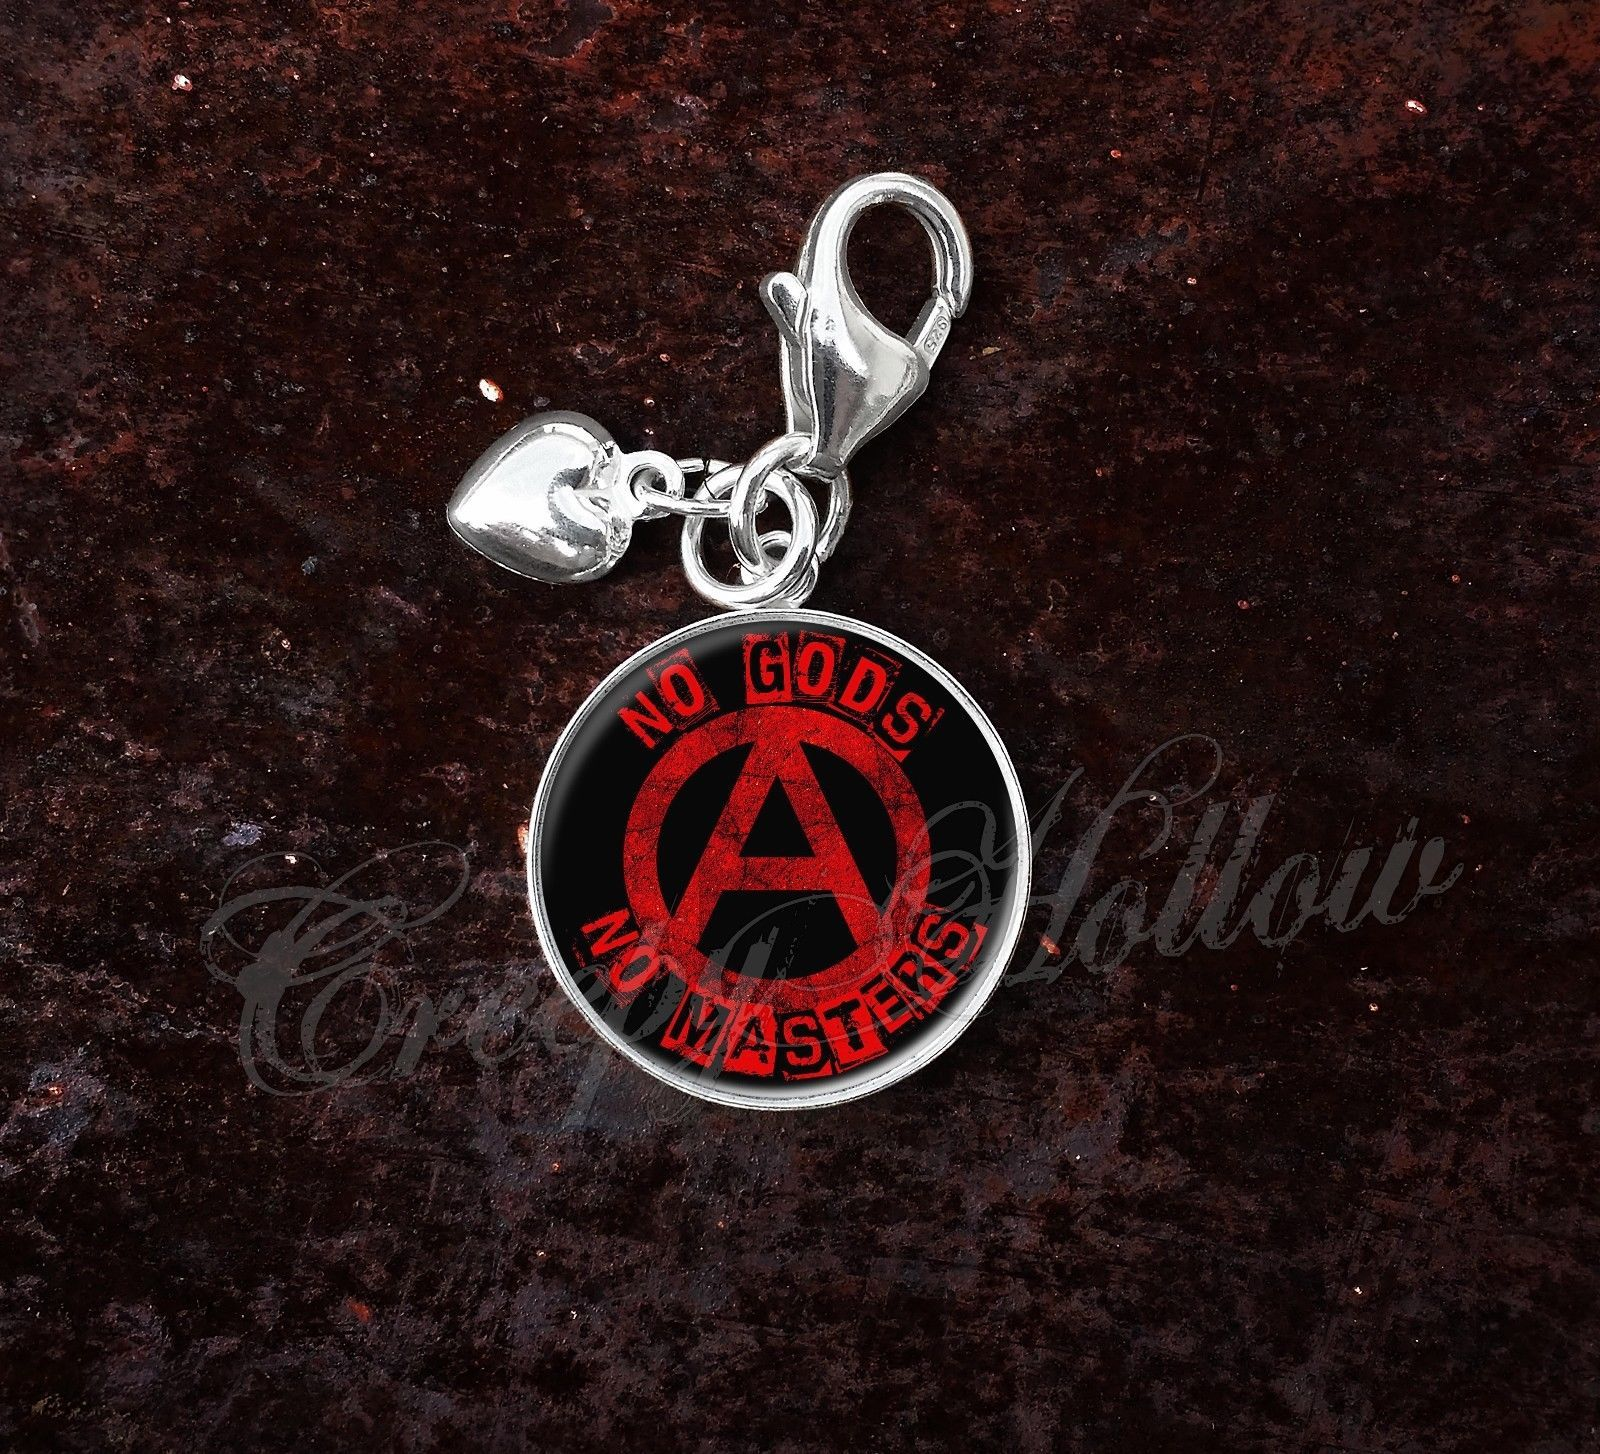 925 Sterling Silver Charm No Gods No Masters Anarchist Anarchy